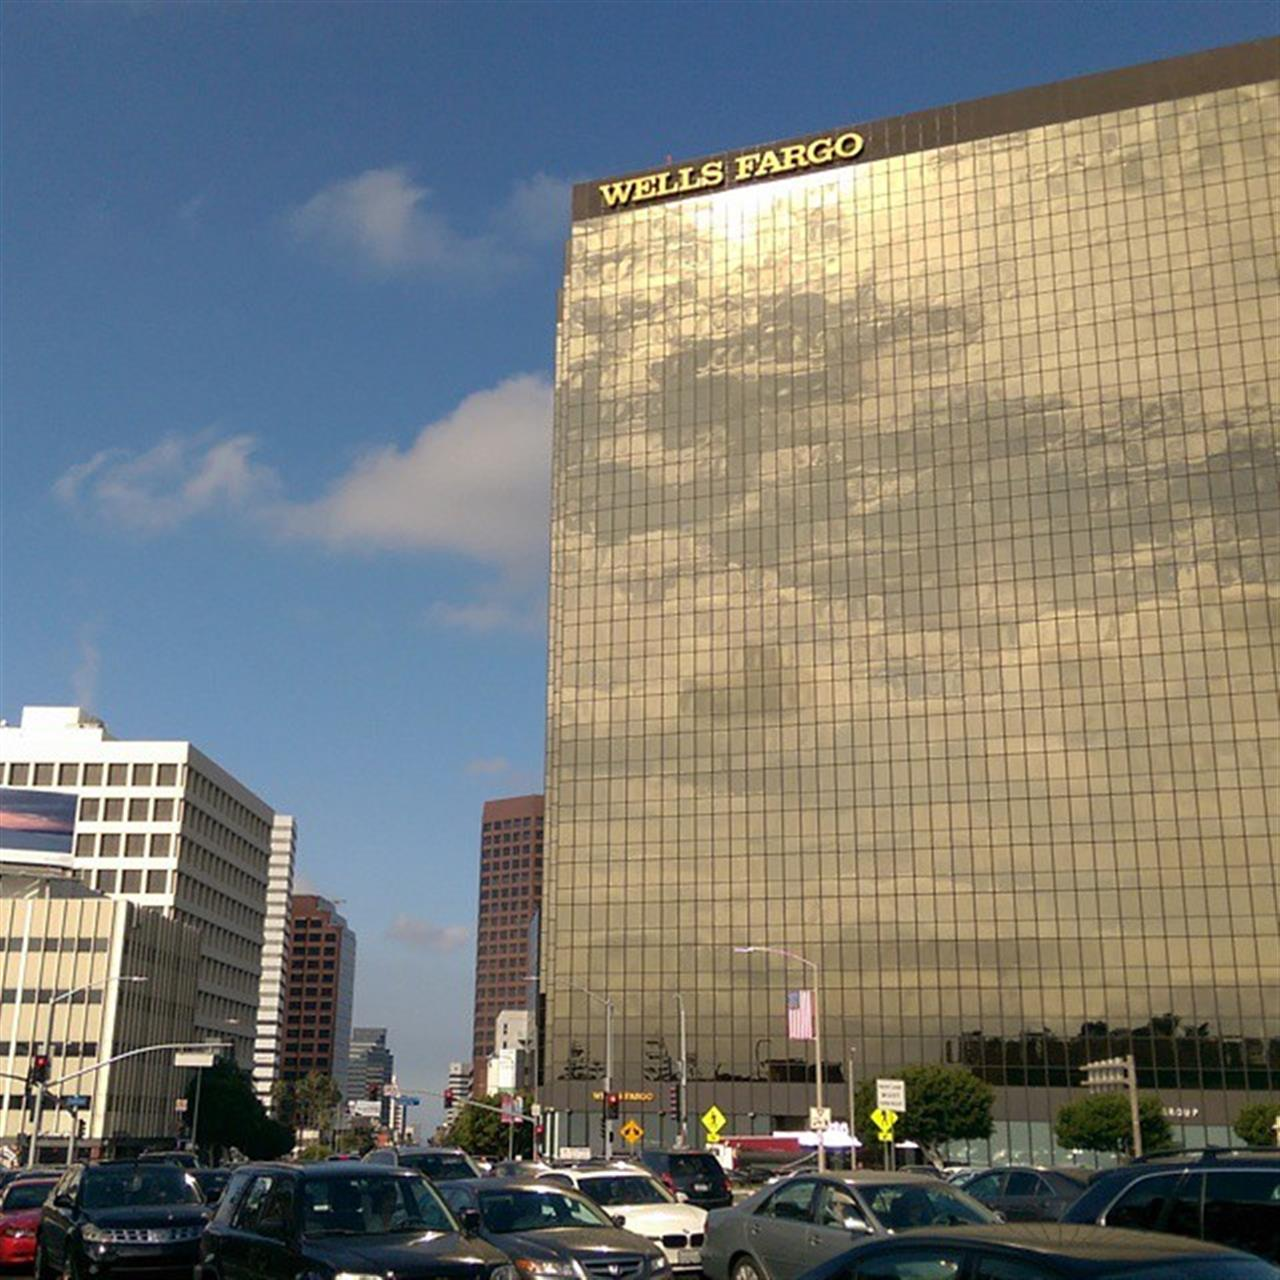 We love the reflections on Wilshire Blvd. What's your favorite part of your commute?